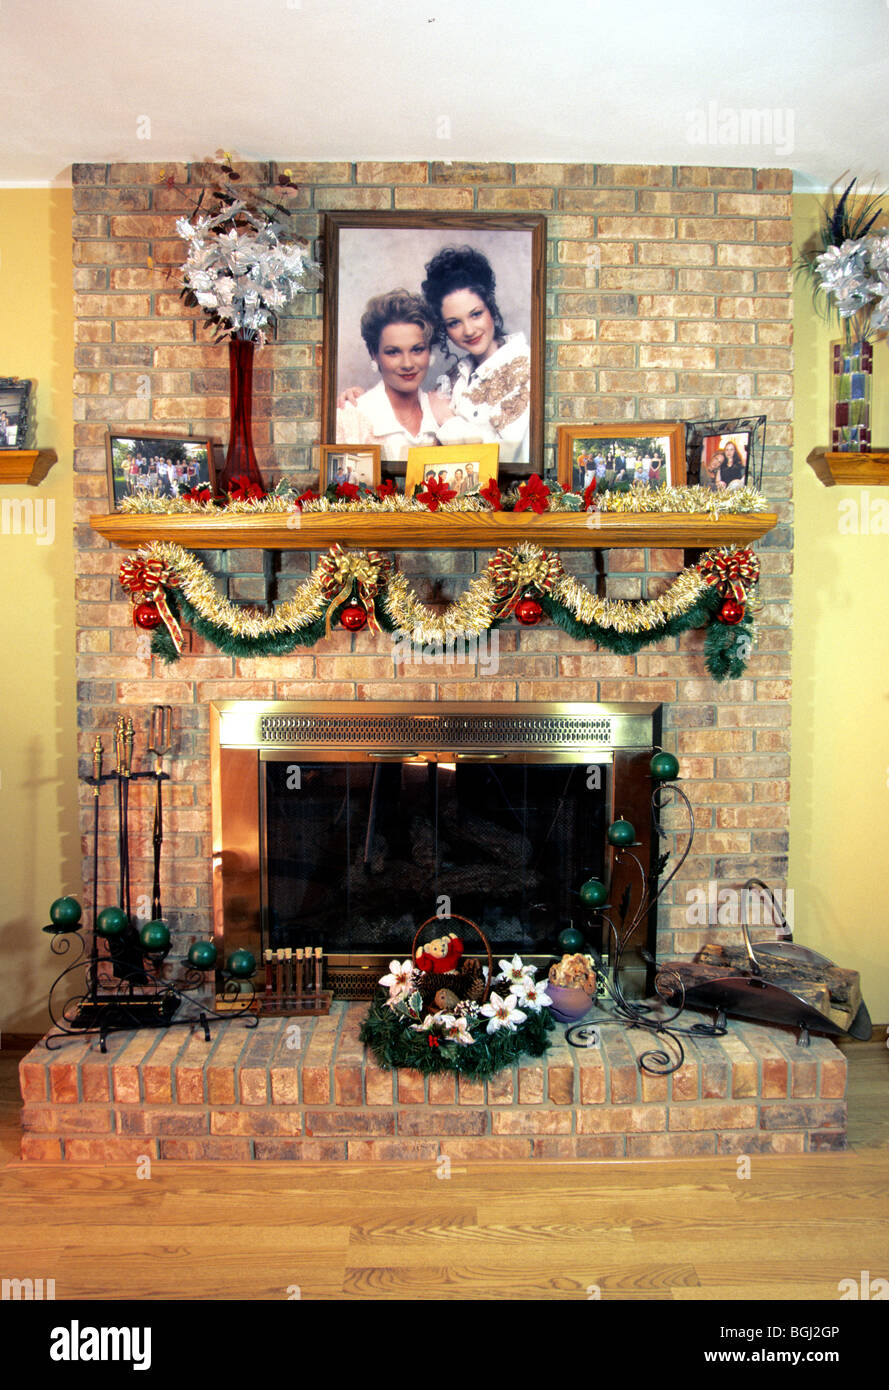 Family Room With Fireplace Still Life Art Artistic Home Decor